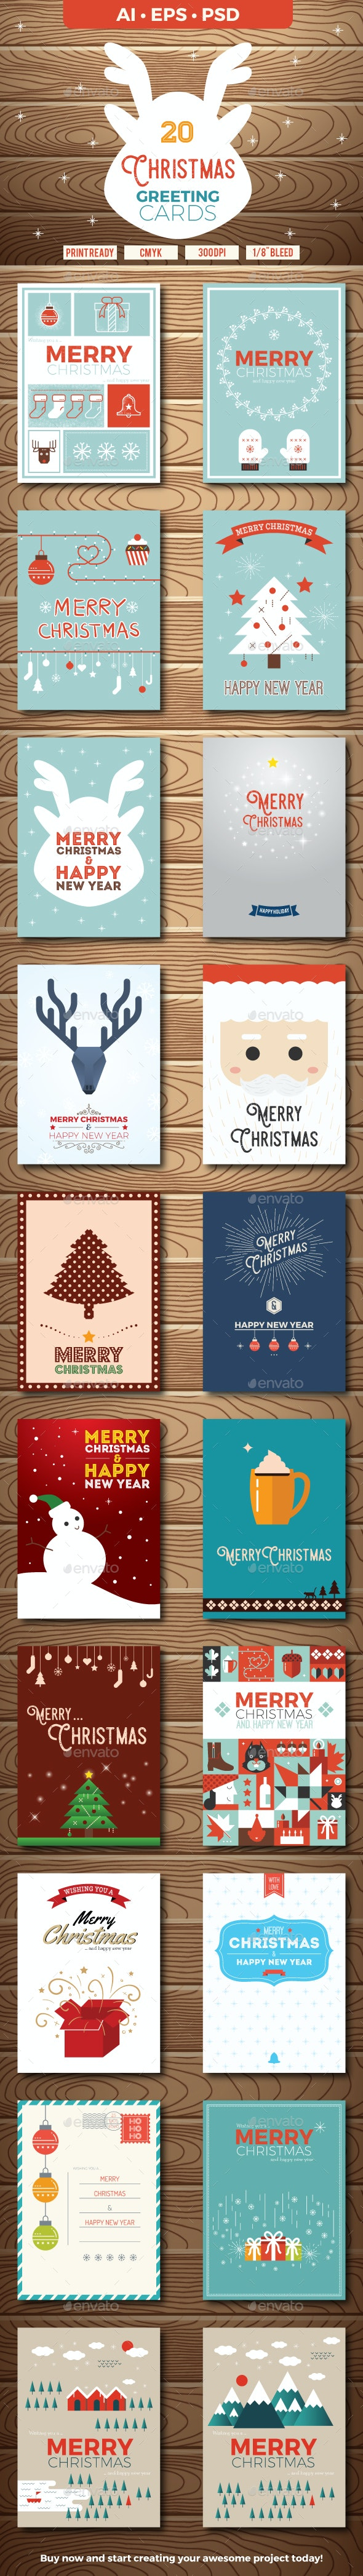 20 Christmas Greeting Cards - Greeting Cards Cards & Invites